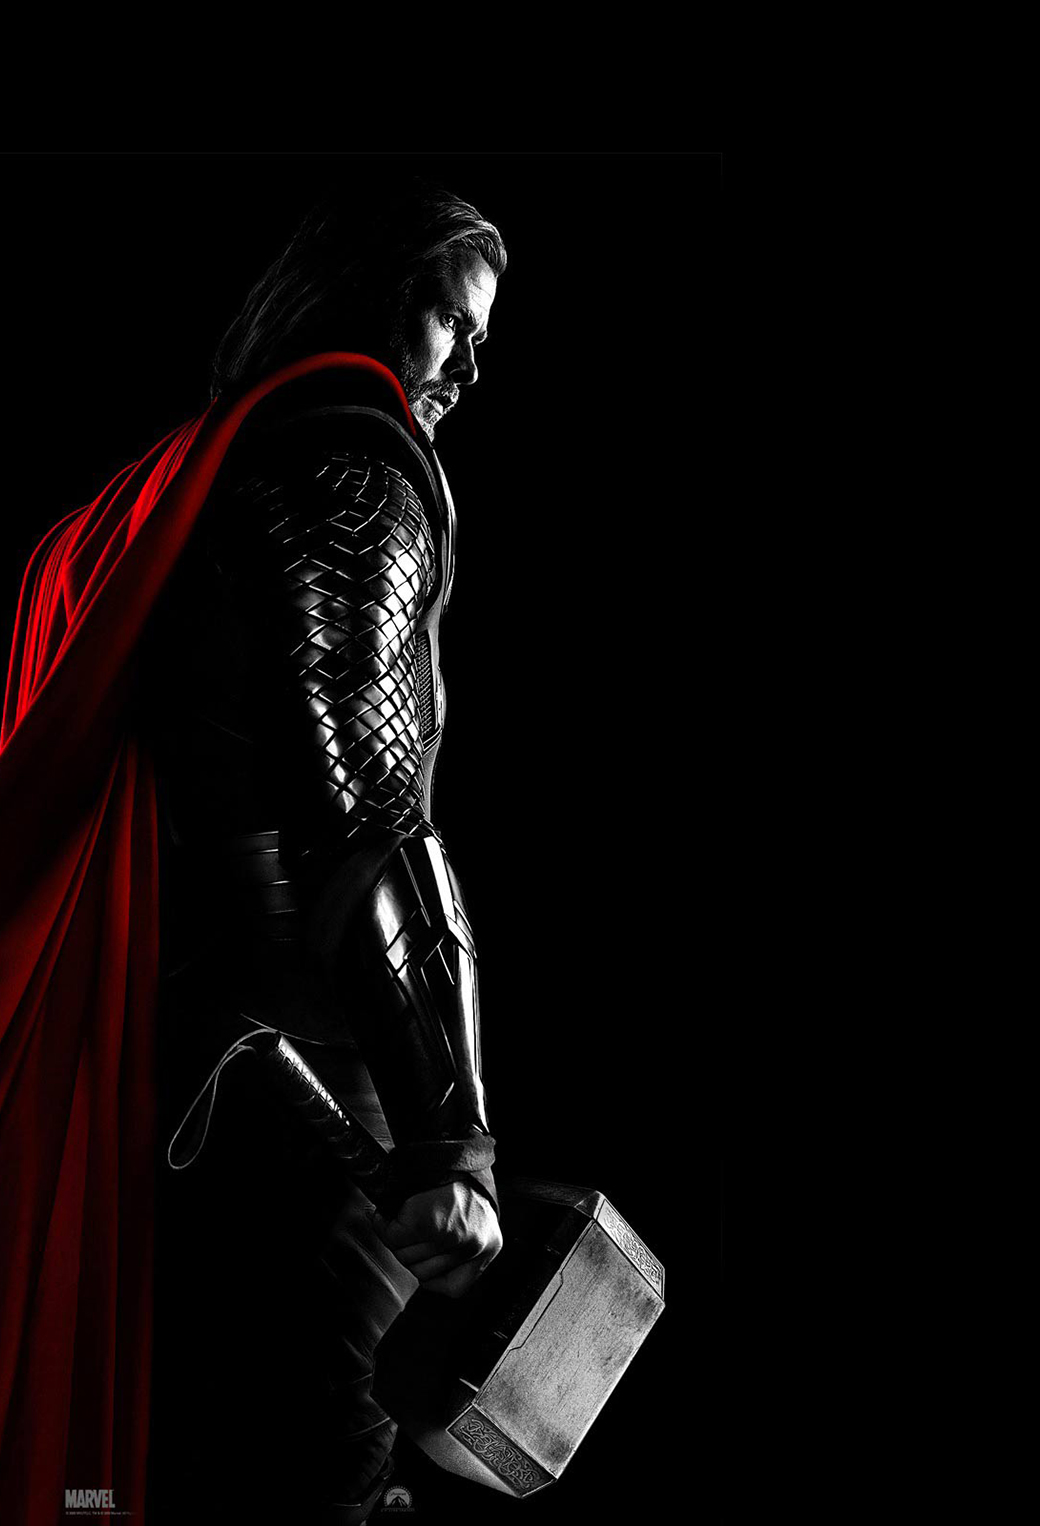 thor 2 wallpaper for iphone x 8 7 6 free download on